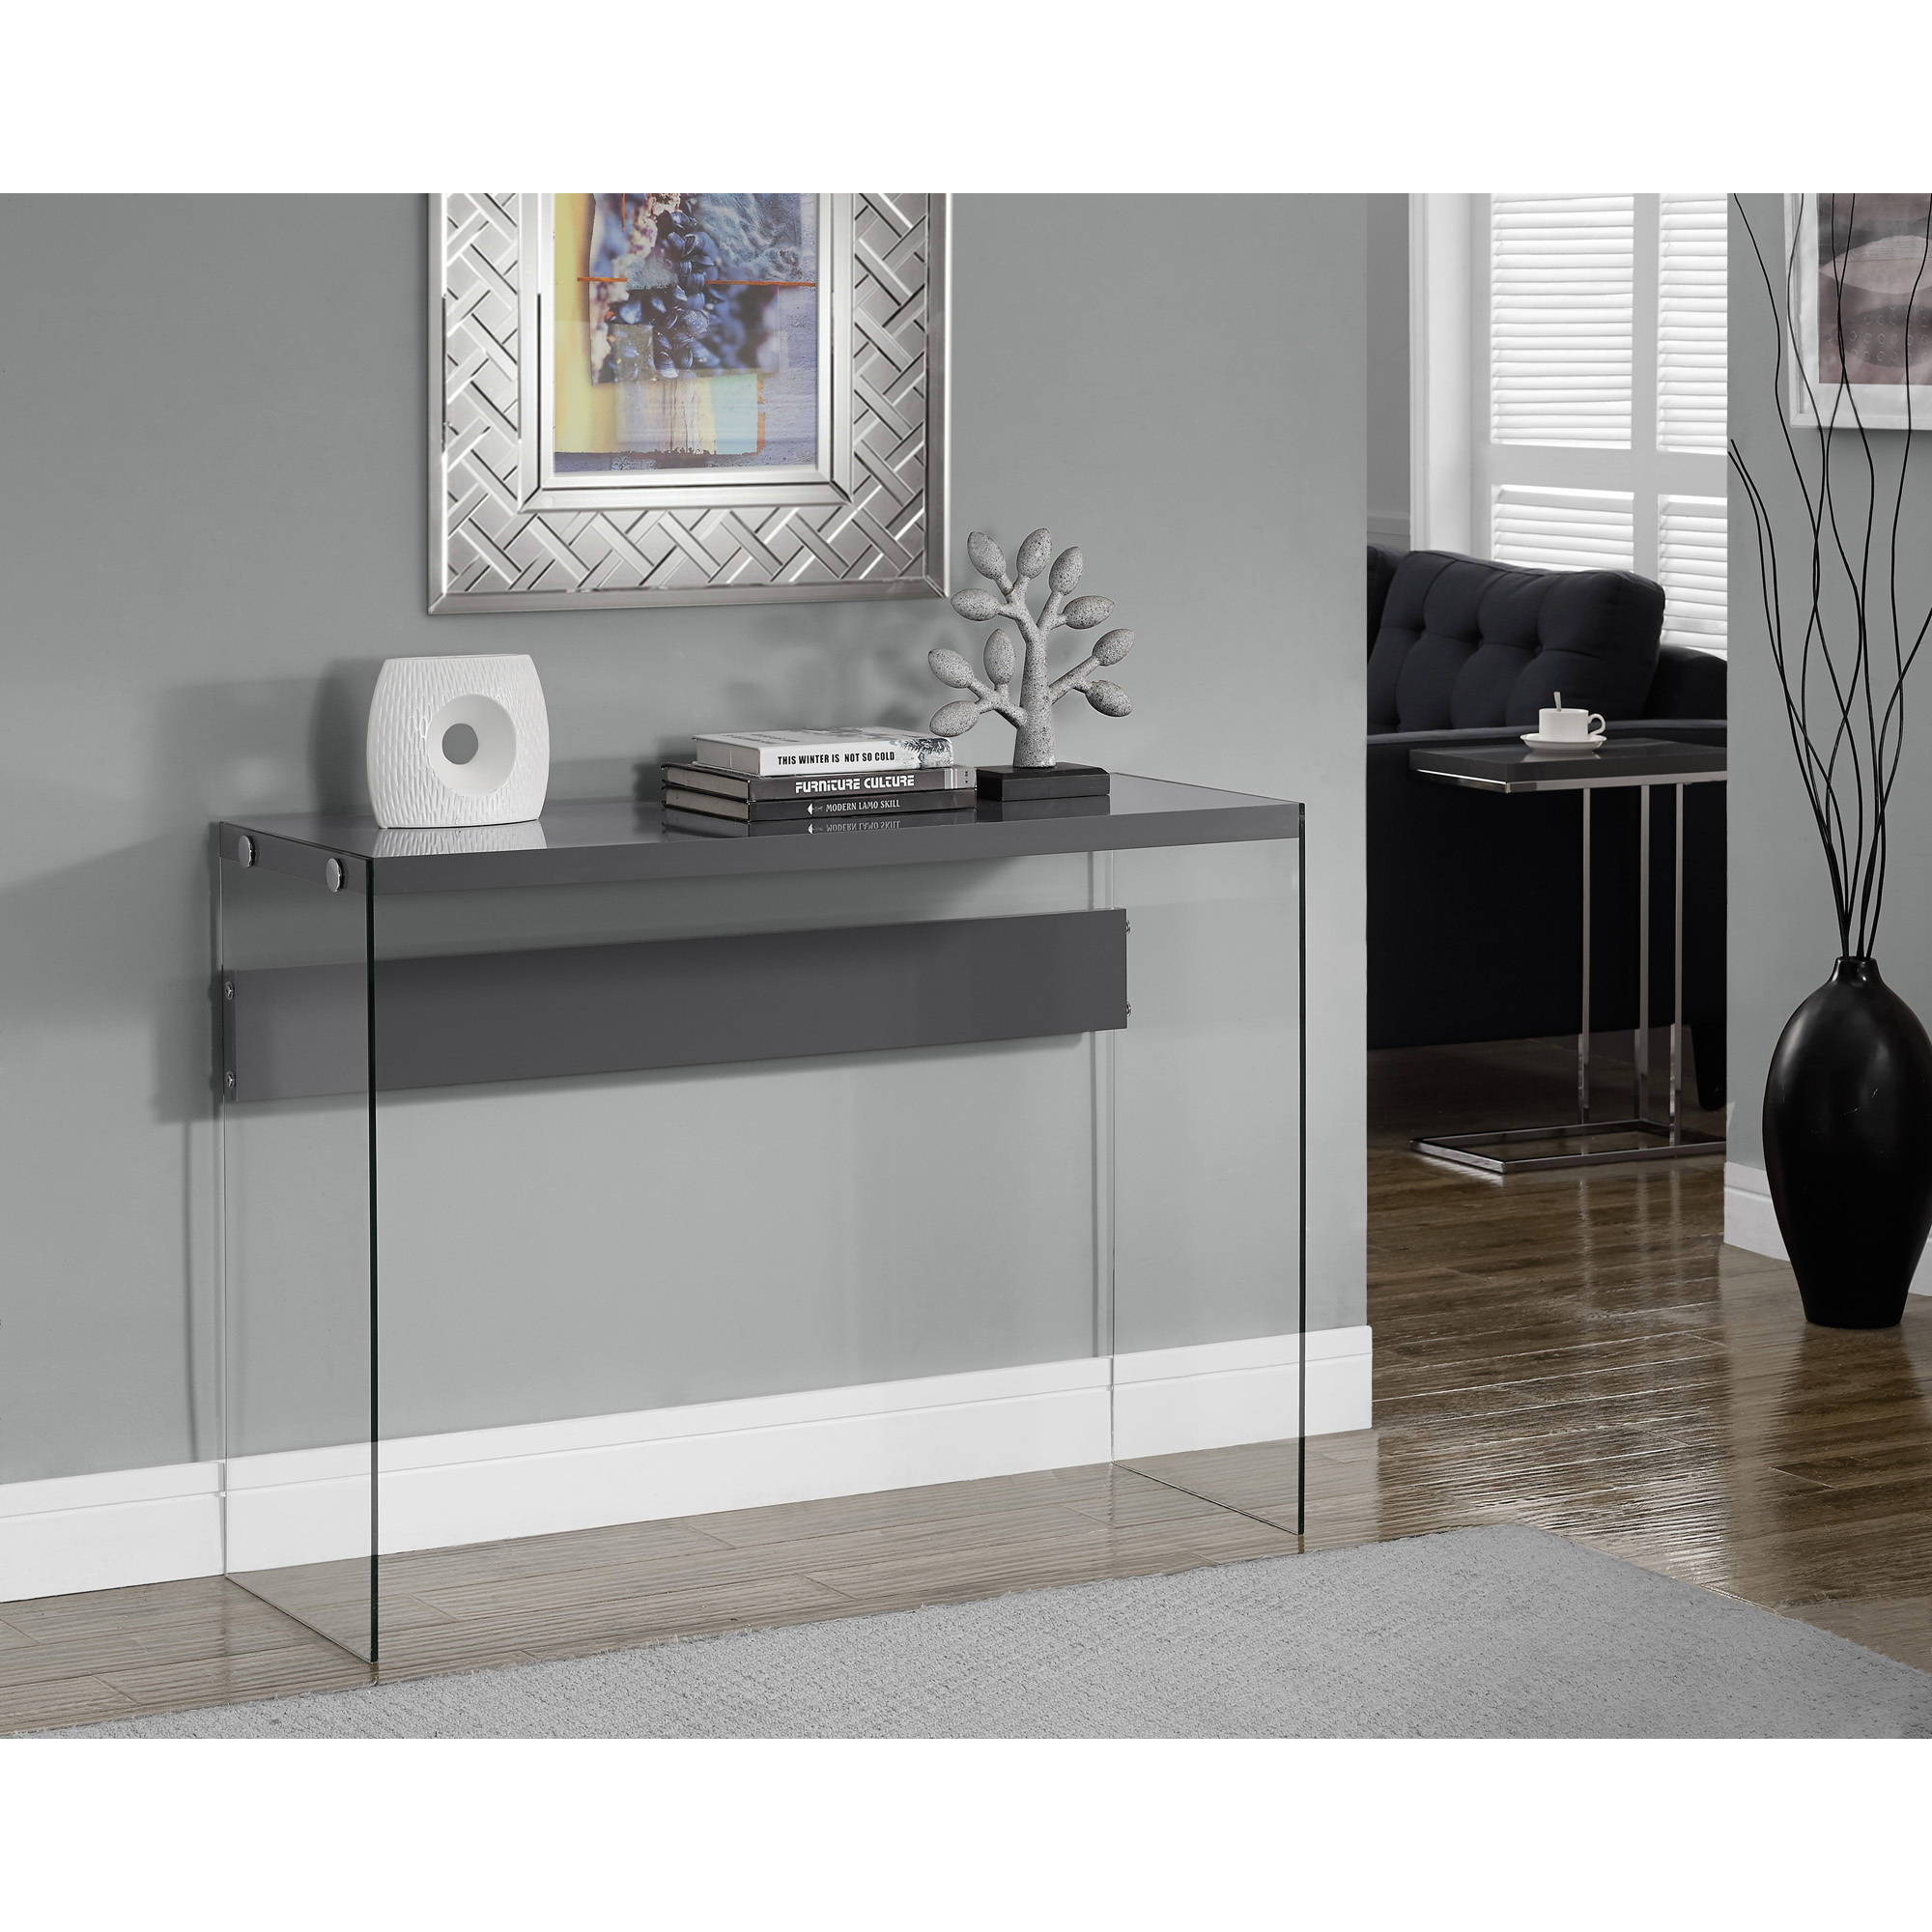 Monarch Console Table Glossy White With Tempered Glass Walmart